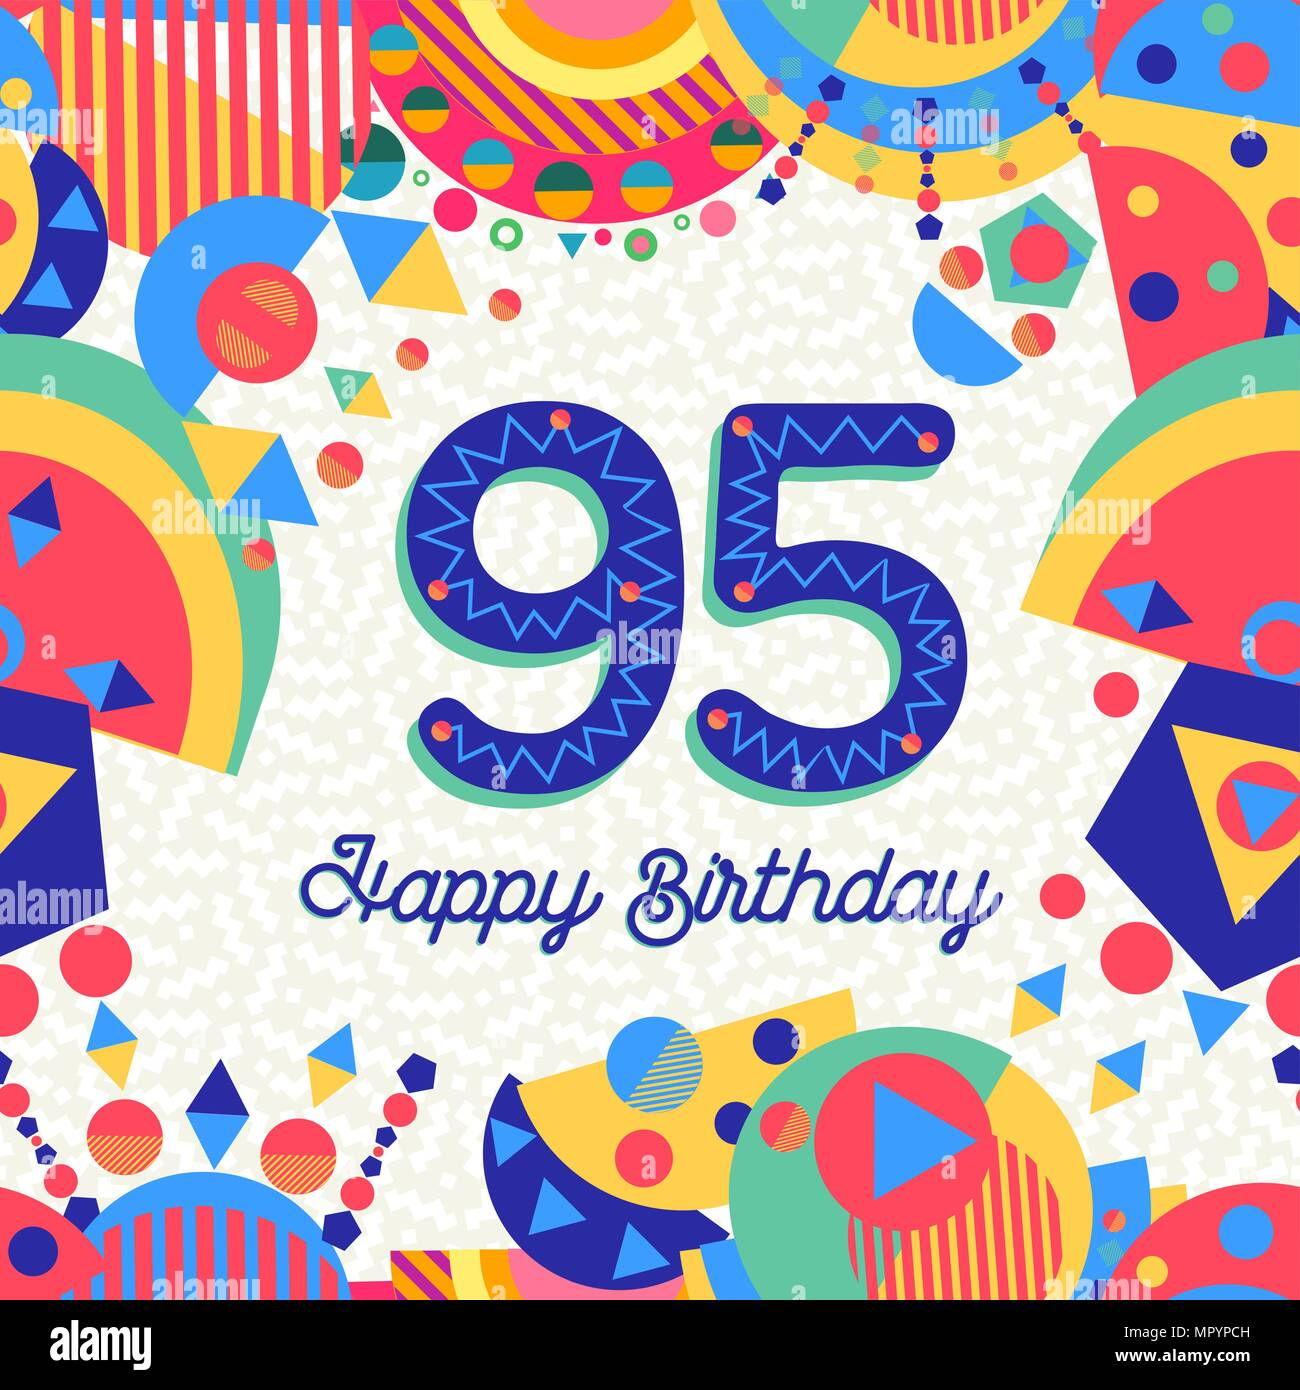 Happy Birthday 95 Ninety Five Year Fun Design With Number Text Label And Colorful Decoration Ideal For Party Invitation Or Greeting Card EPS10 Vect